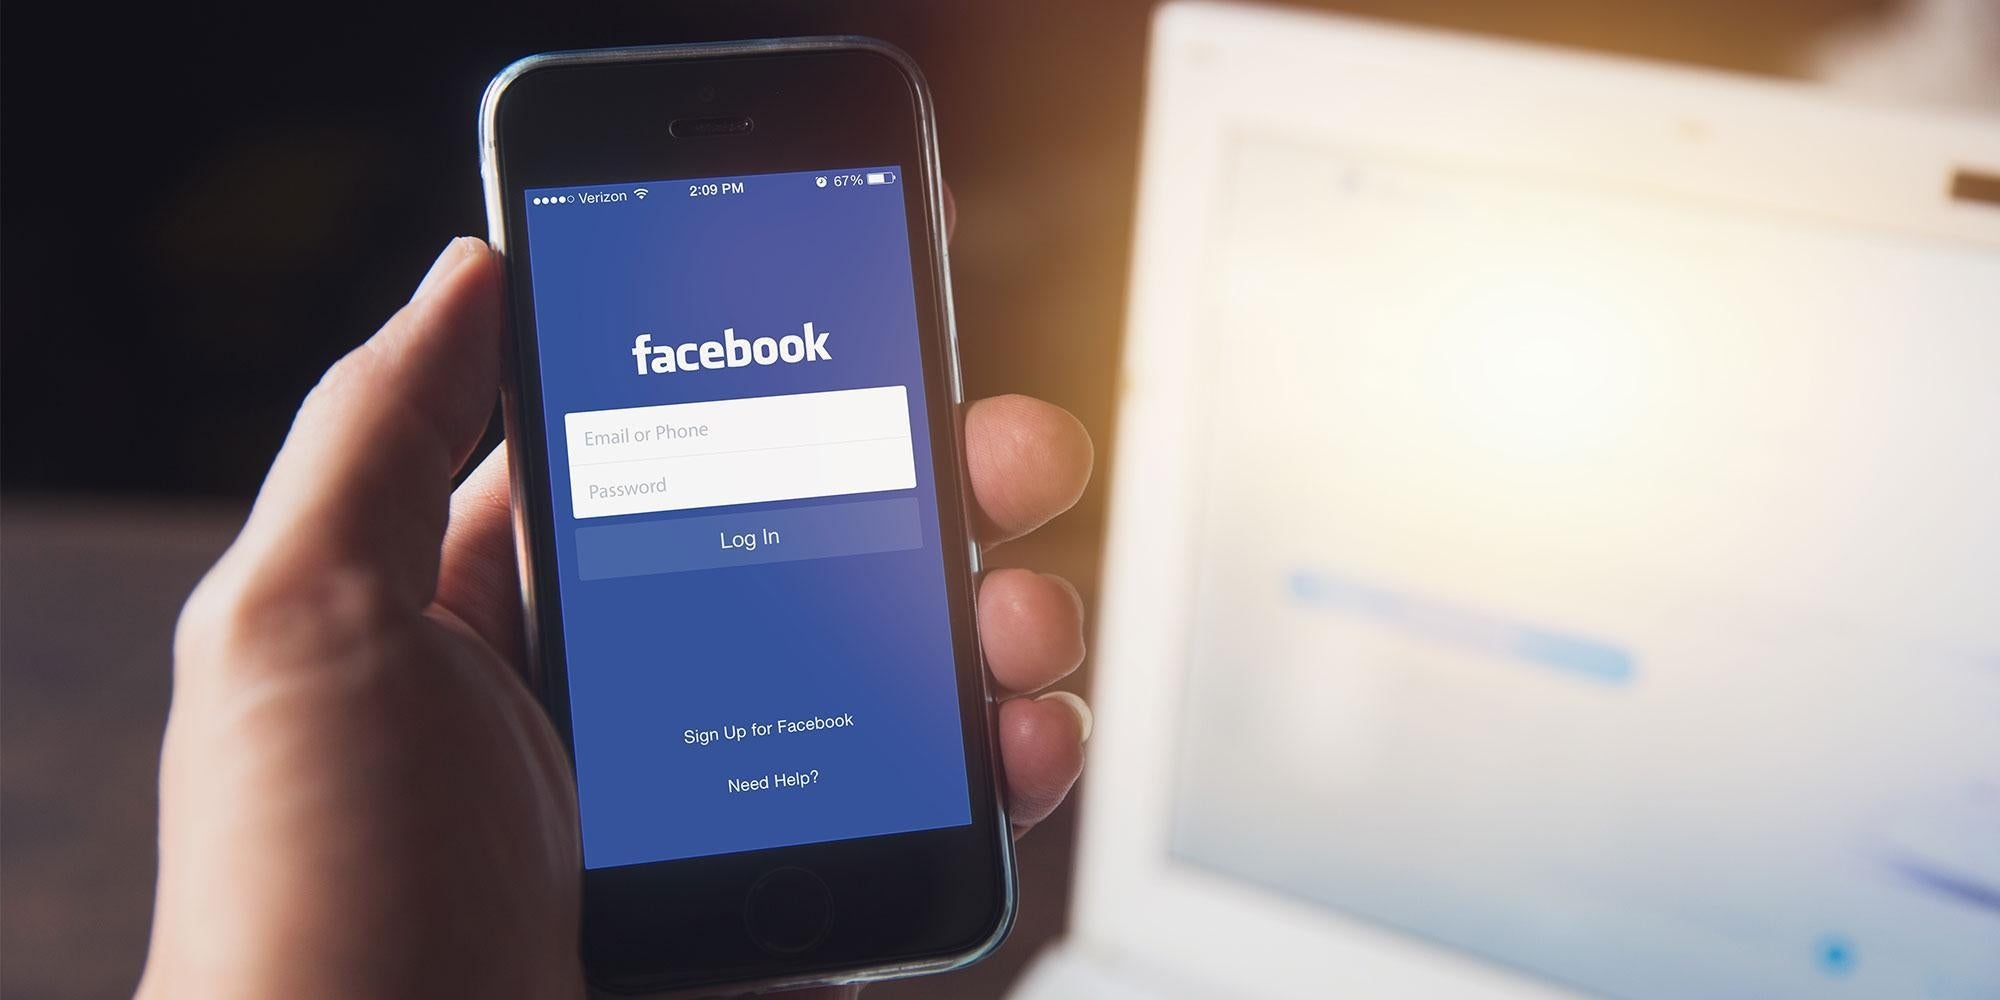 German court rules Facebook's use of personal data 'illegal'